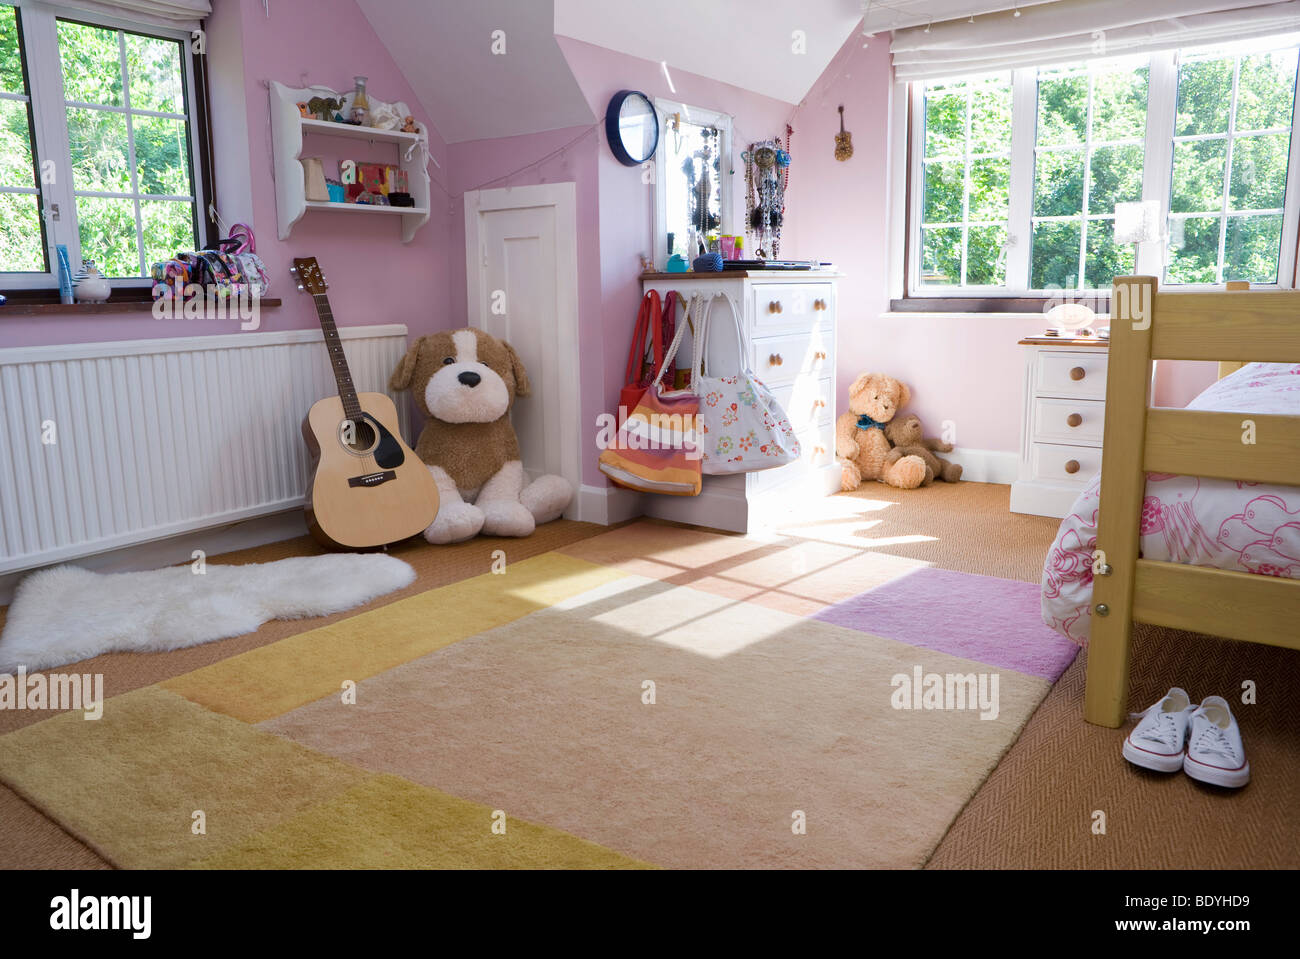 Tidy room - Stock Image